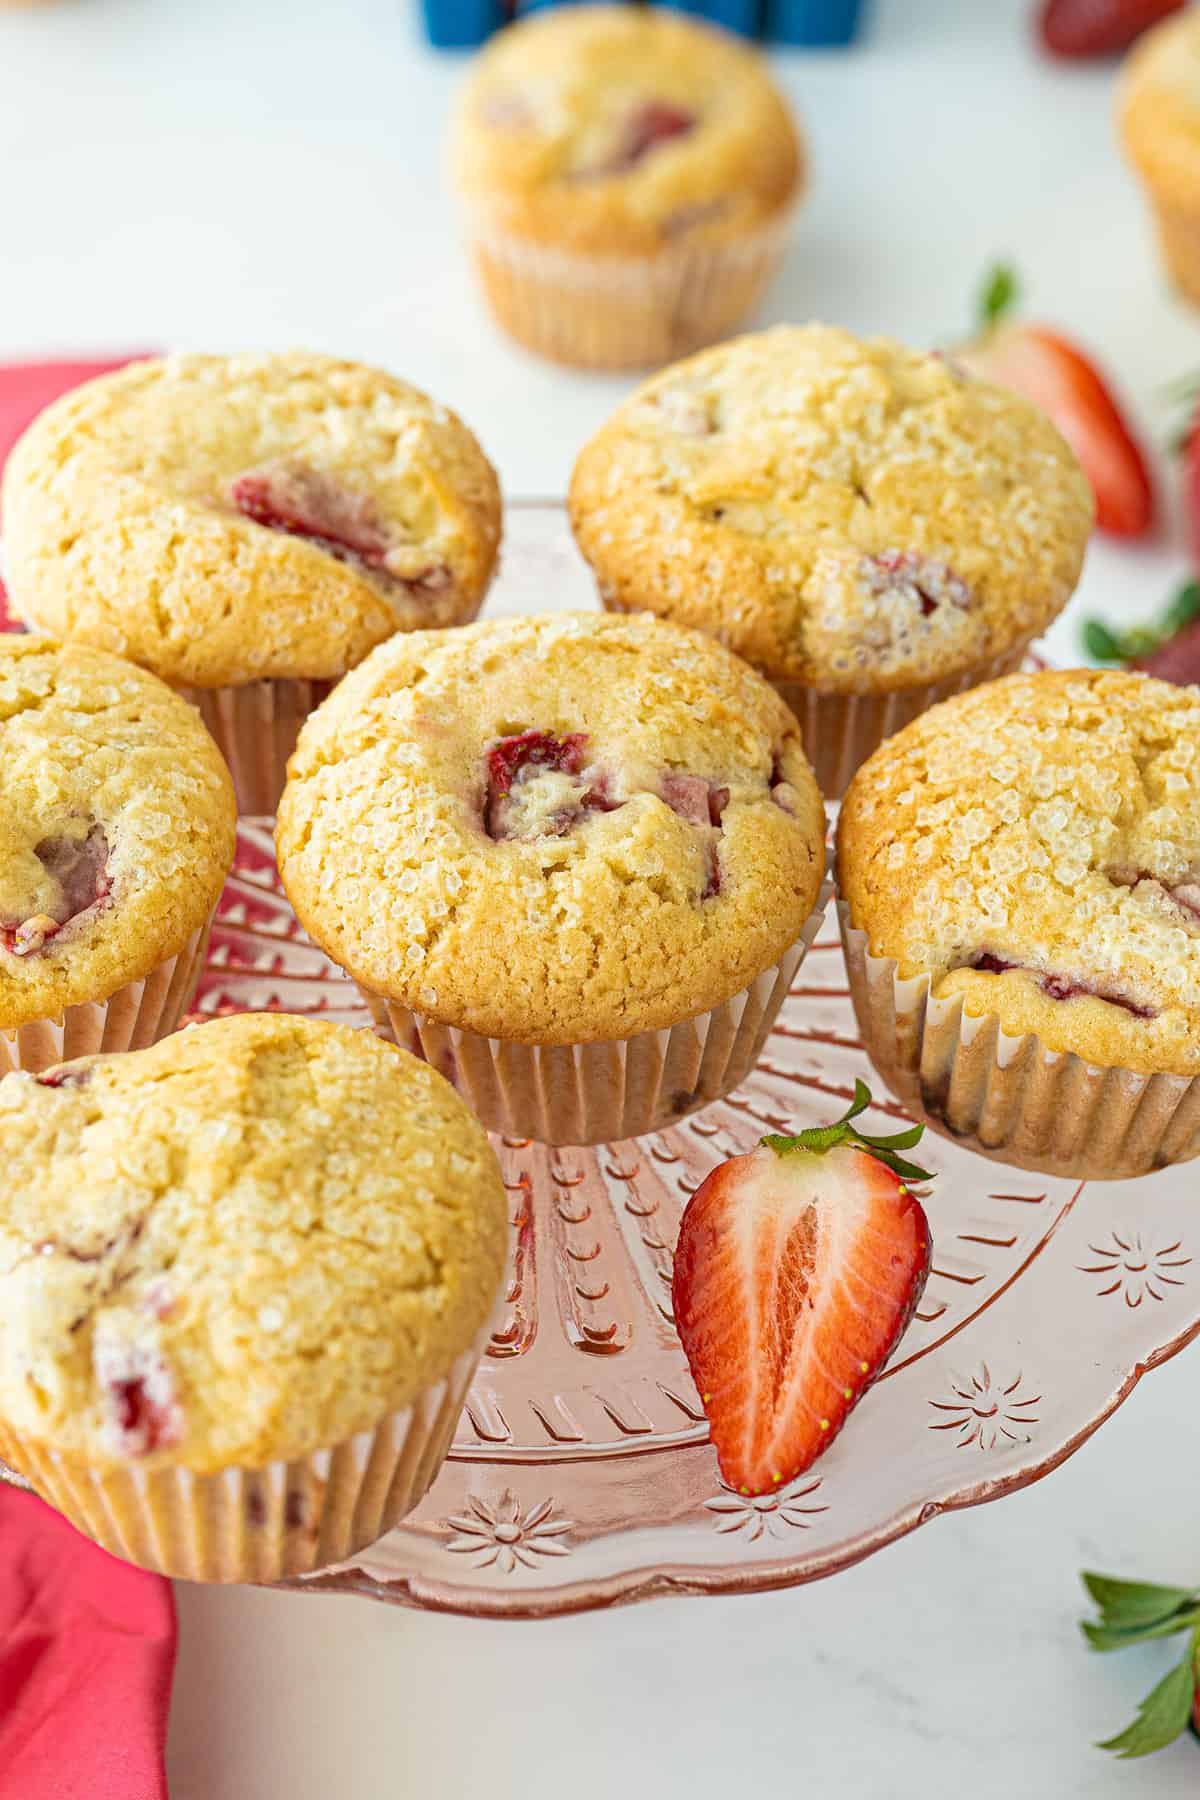 strawberry muffins on a pink platter